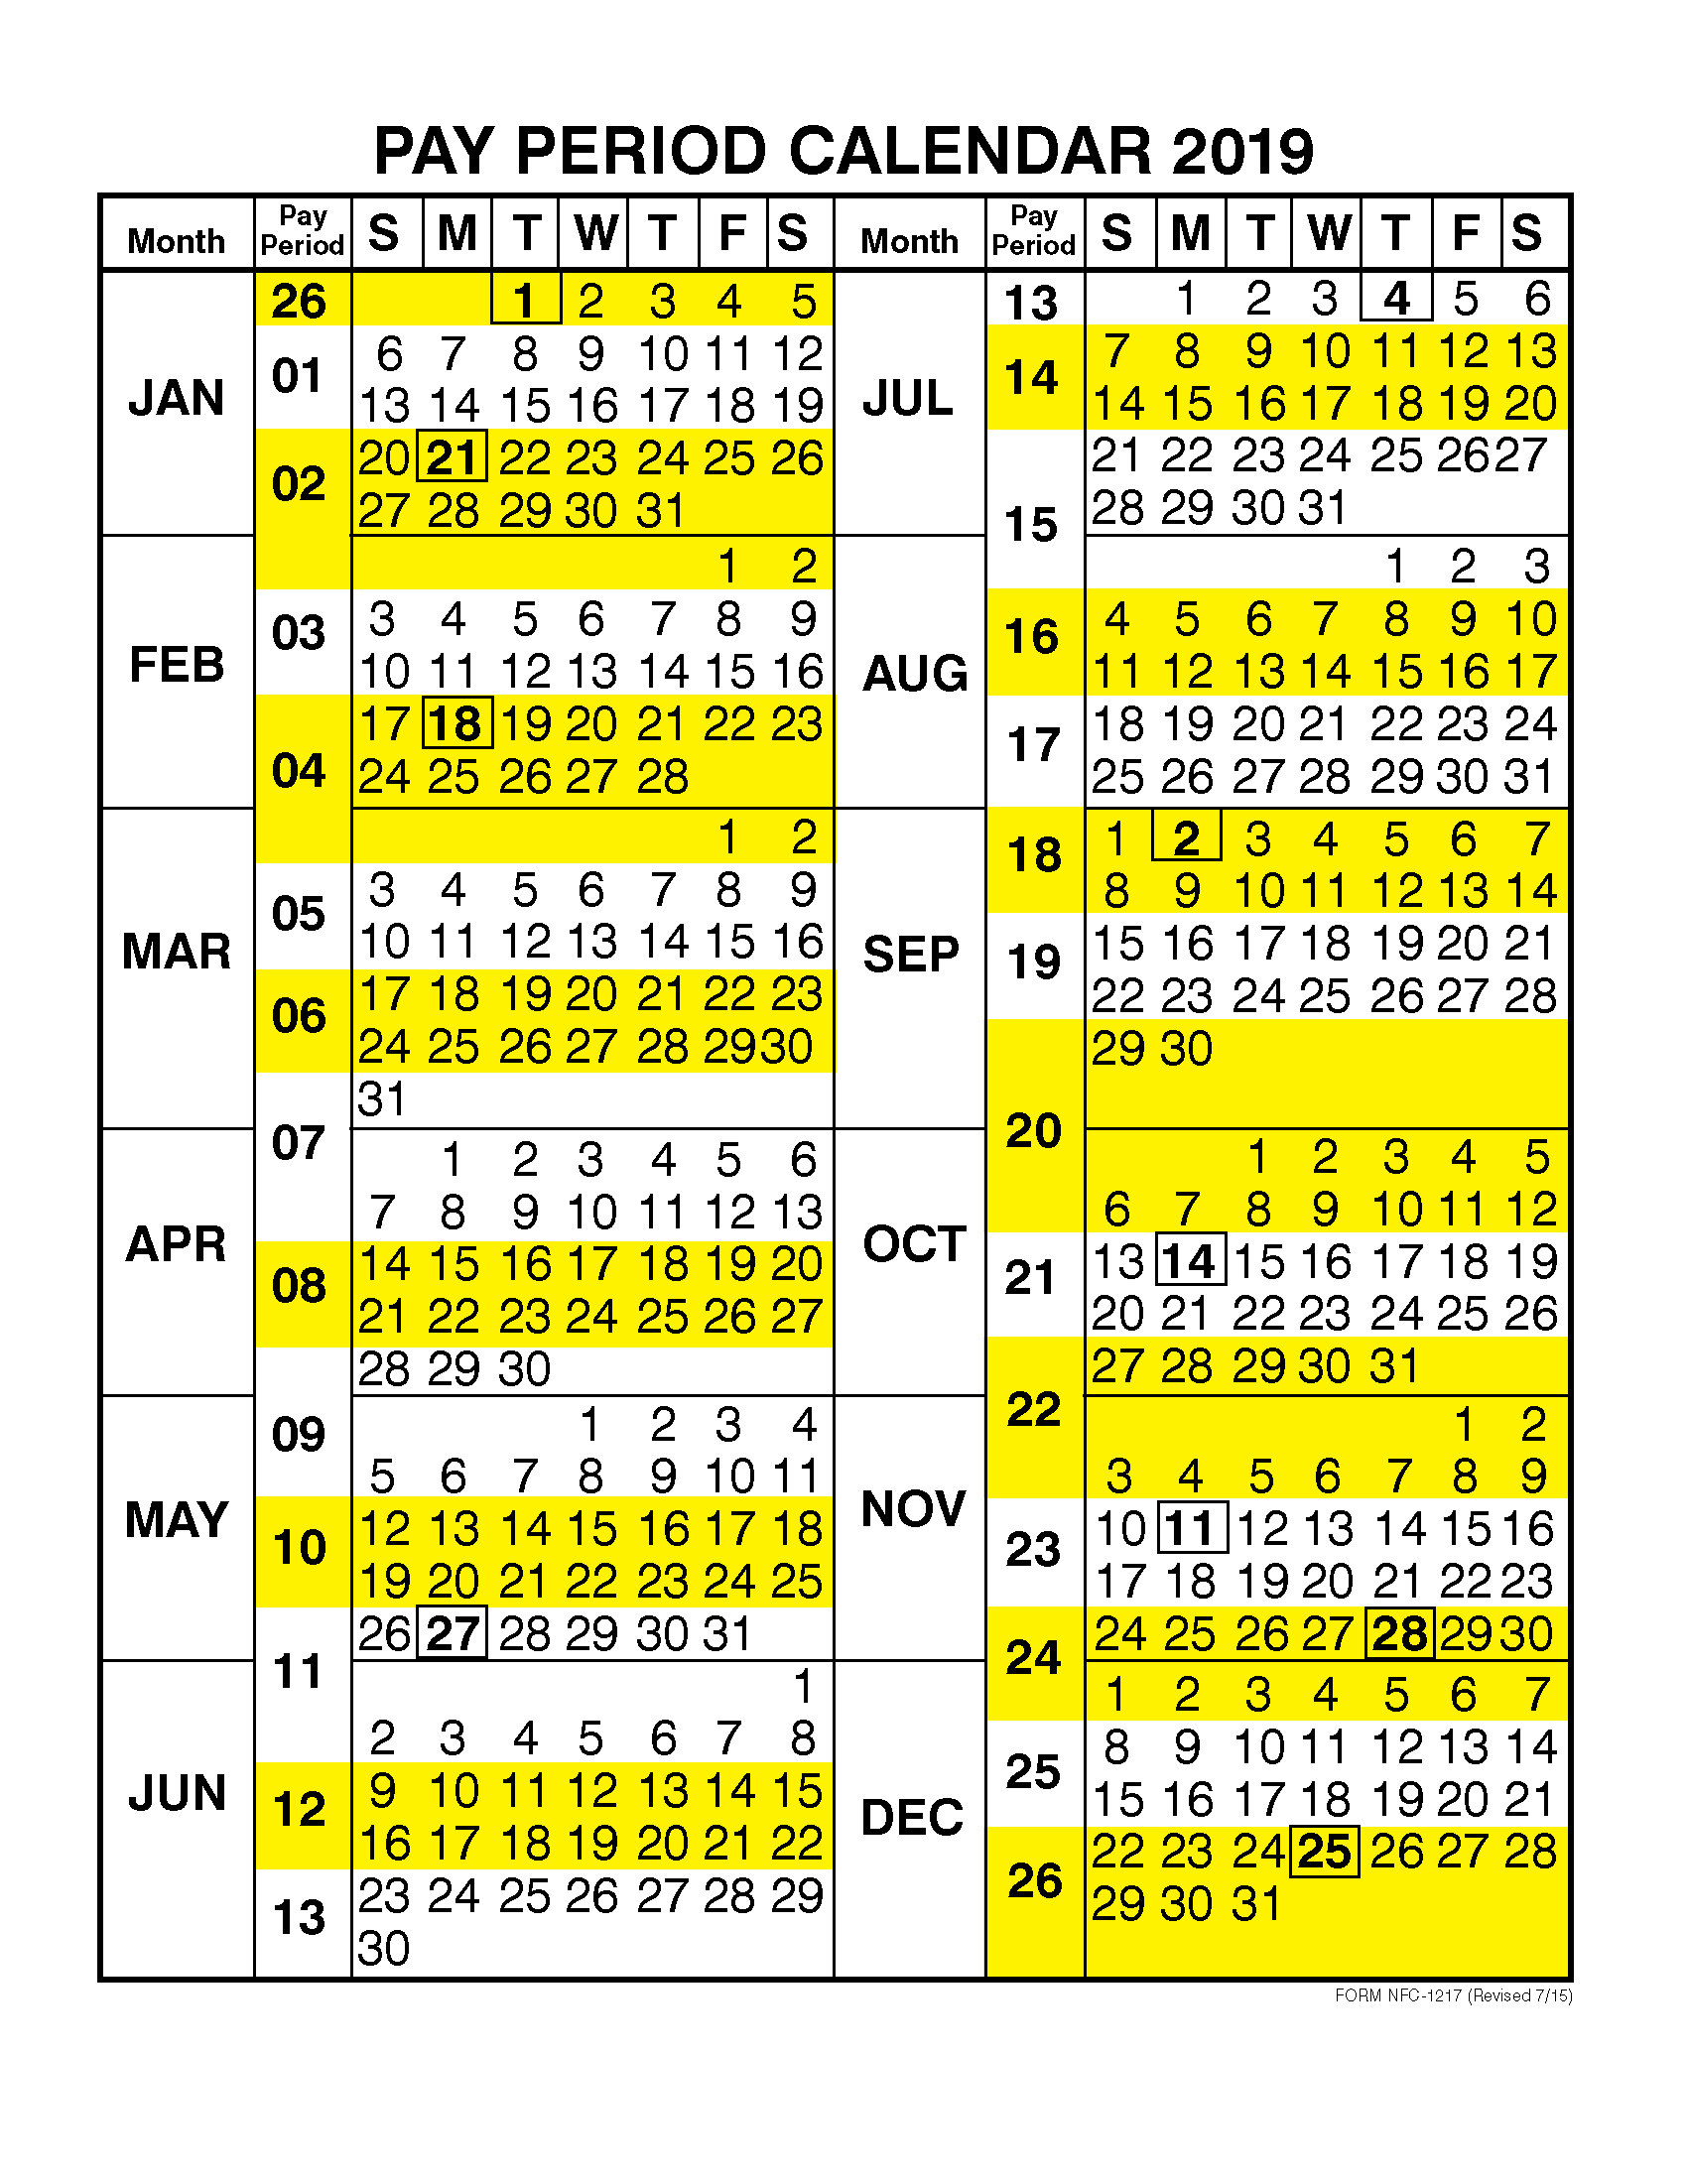 2019 Federal Pay Period Calendar Pay Period Calendar 2019 by Calendar Year | Free Printable 2019